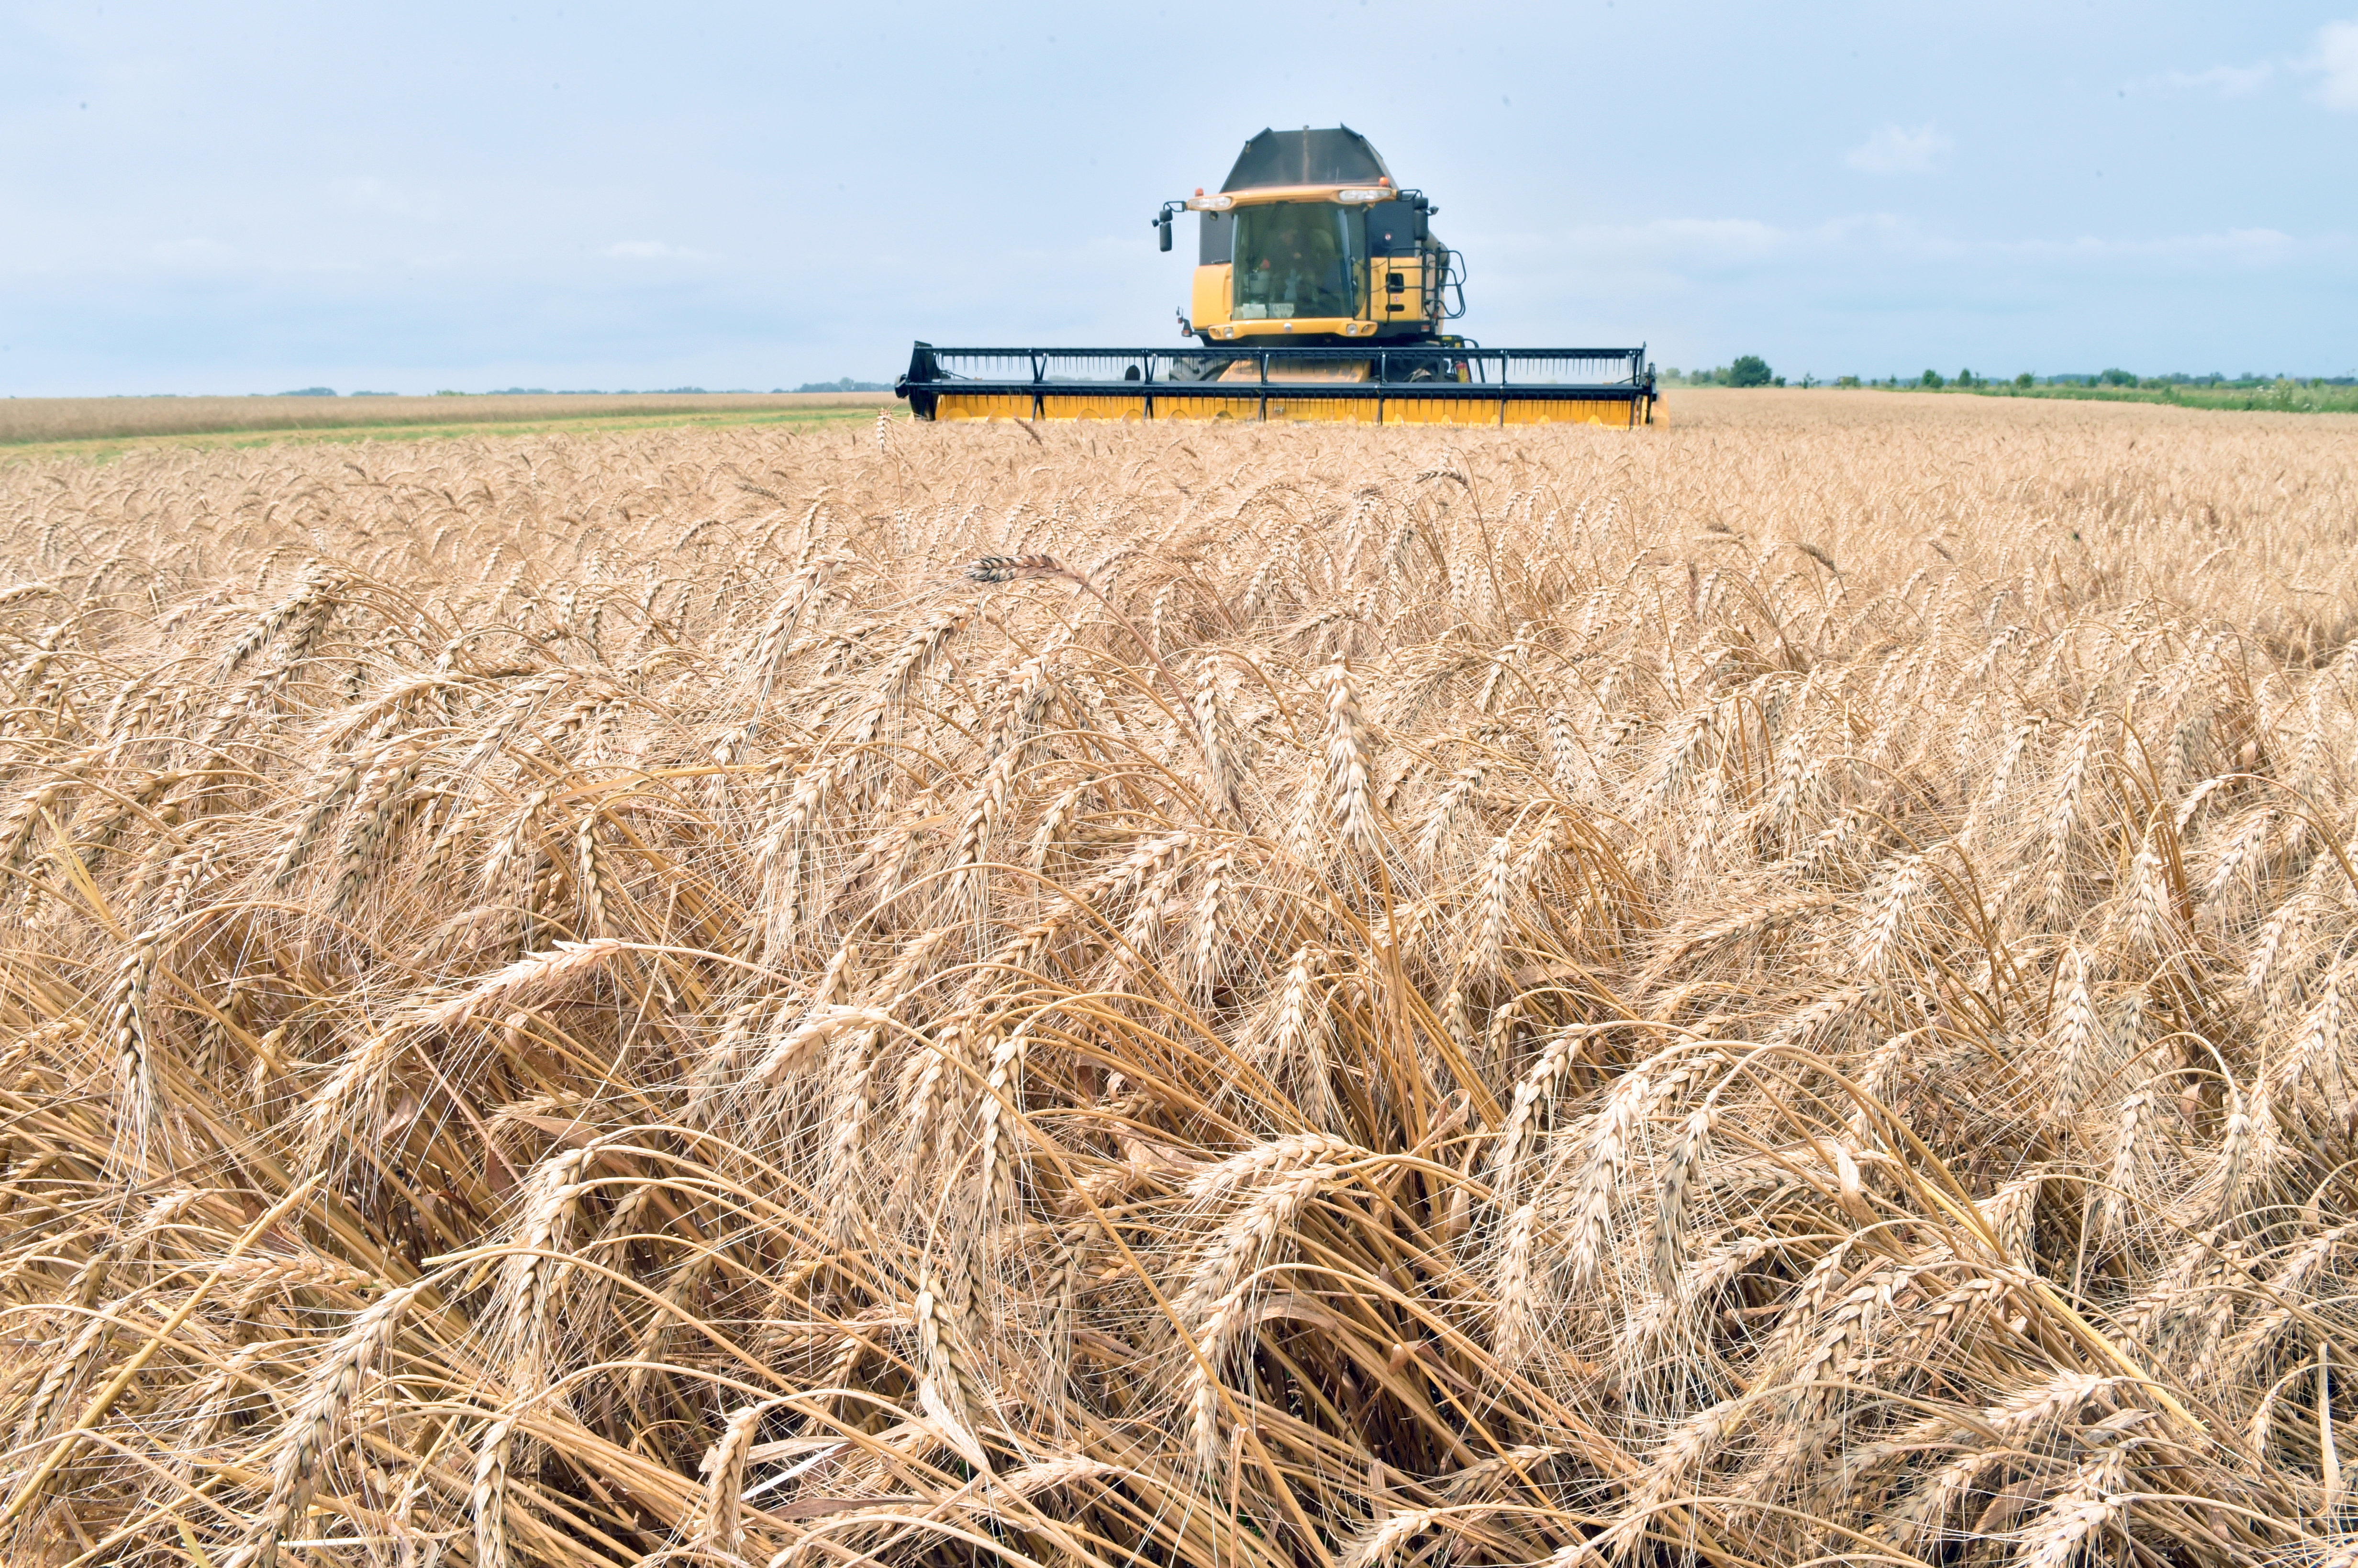 A combine harvester gathers grain from a field in Ukraine (file).